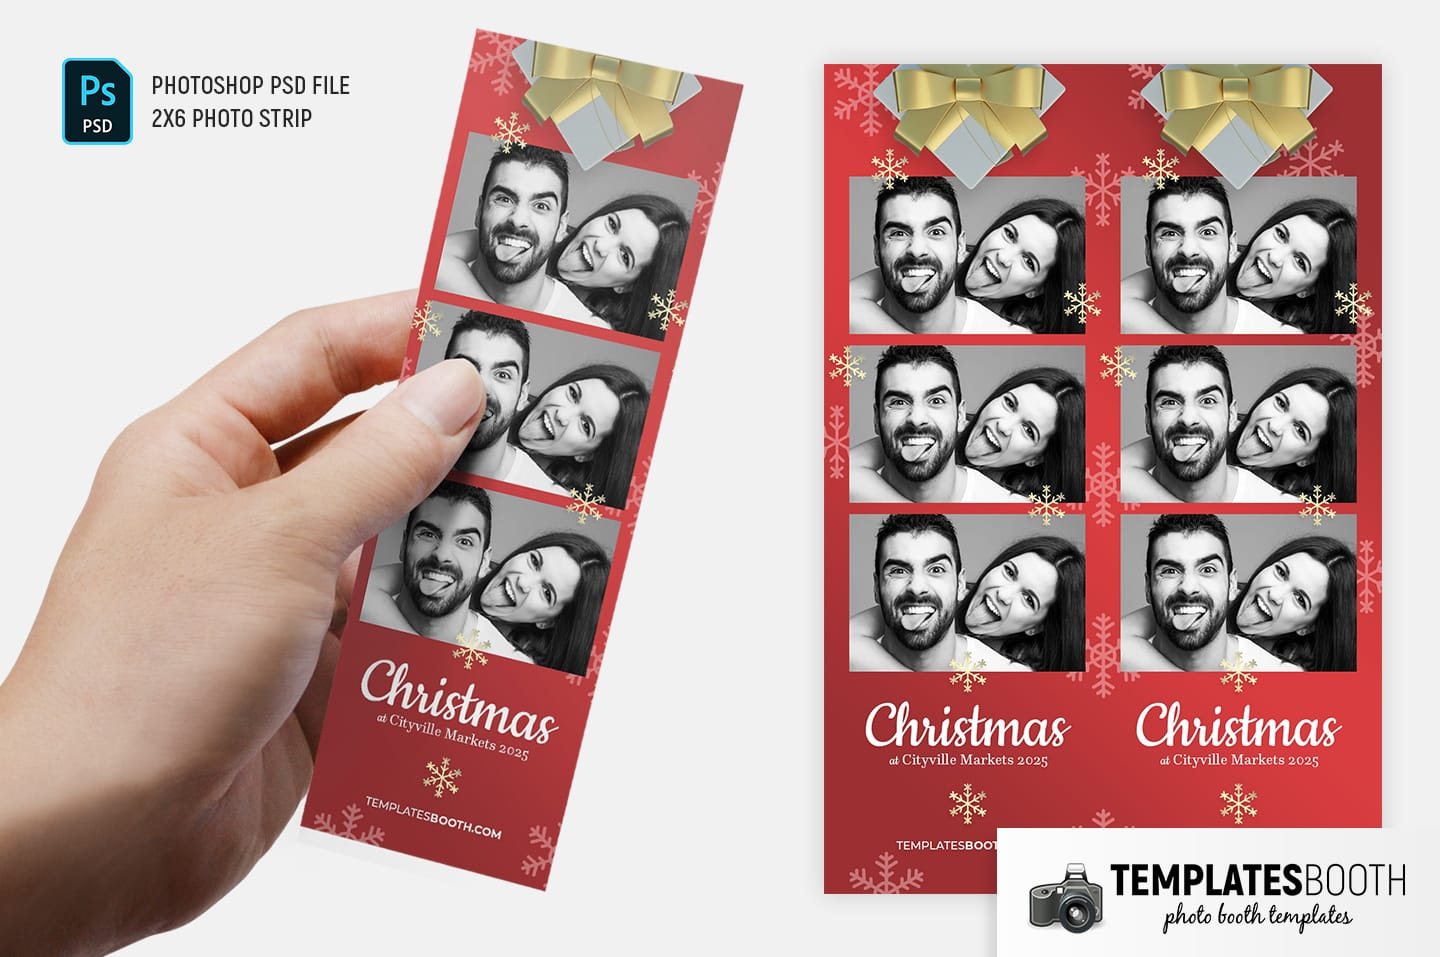 Christmas Gift Photo Booth Template (2x6 photo strip)